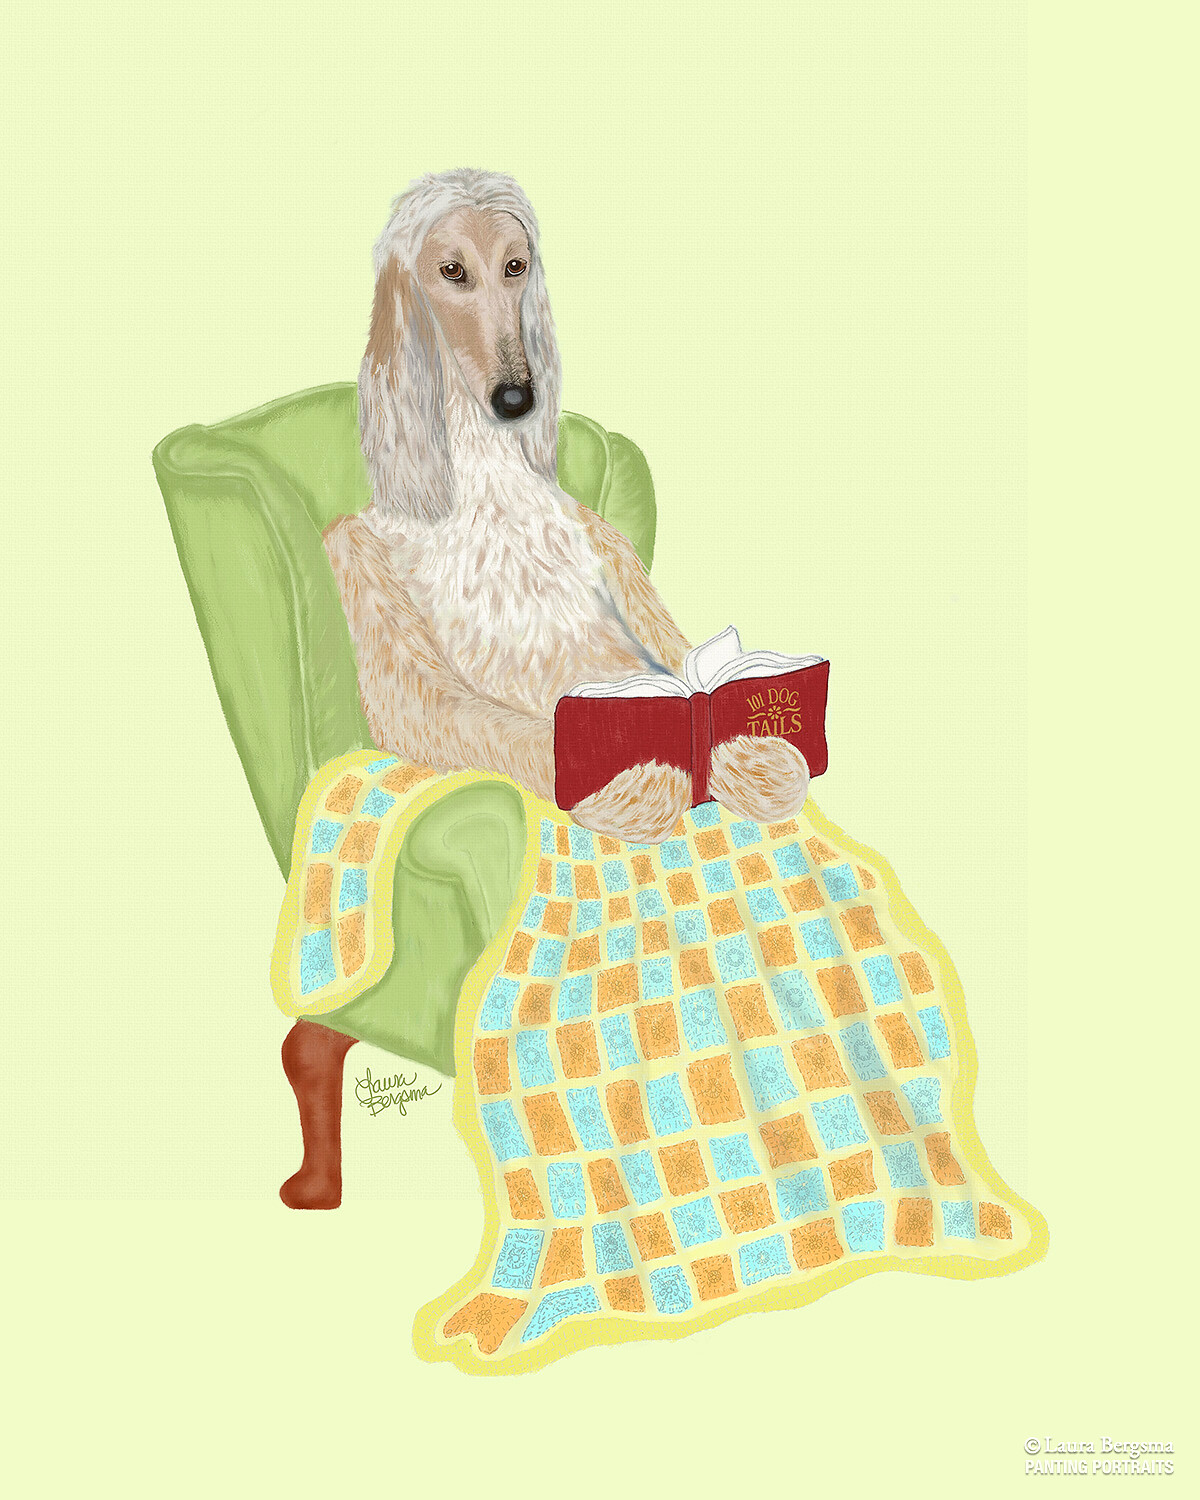 Afghan hound reading a book with a blanket.